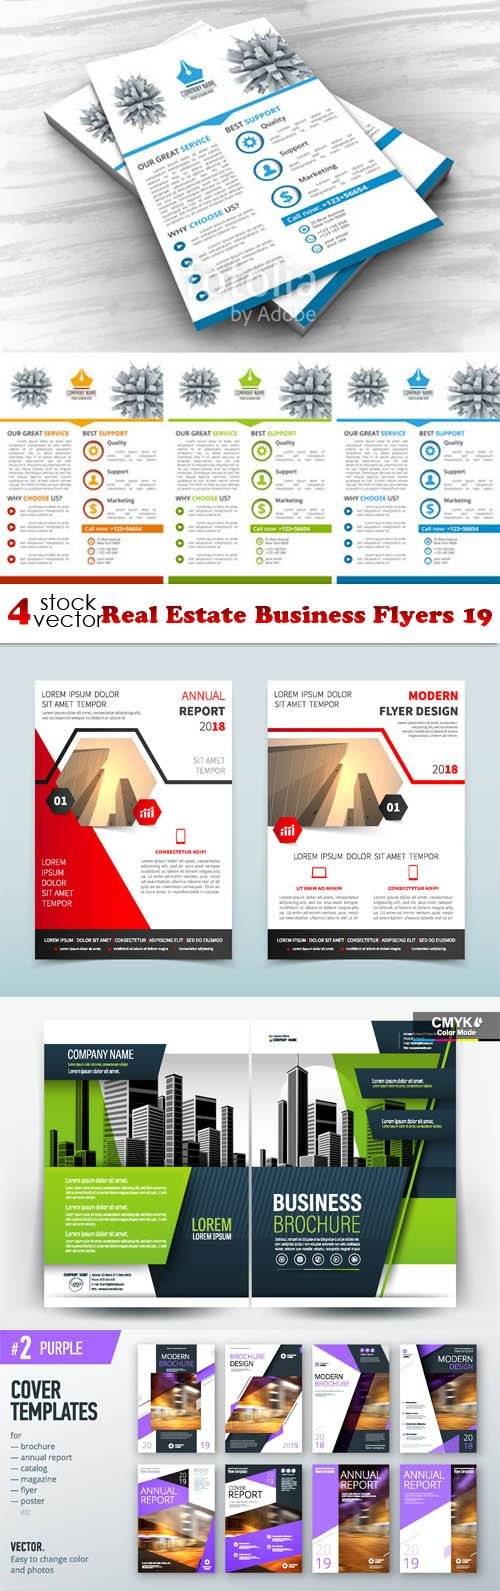 Vectors - Real Estate Business Flyers 19